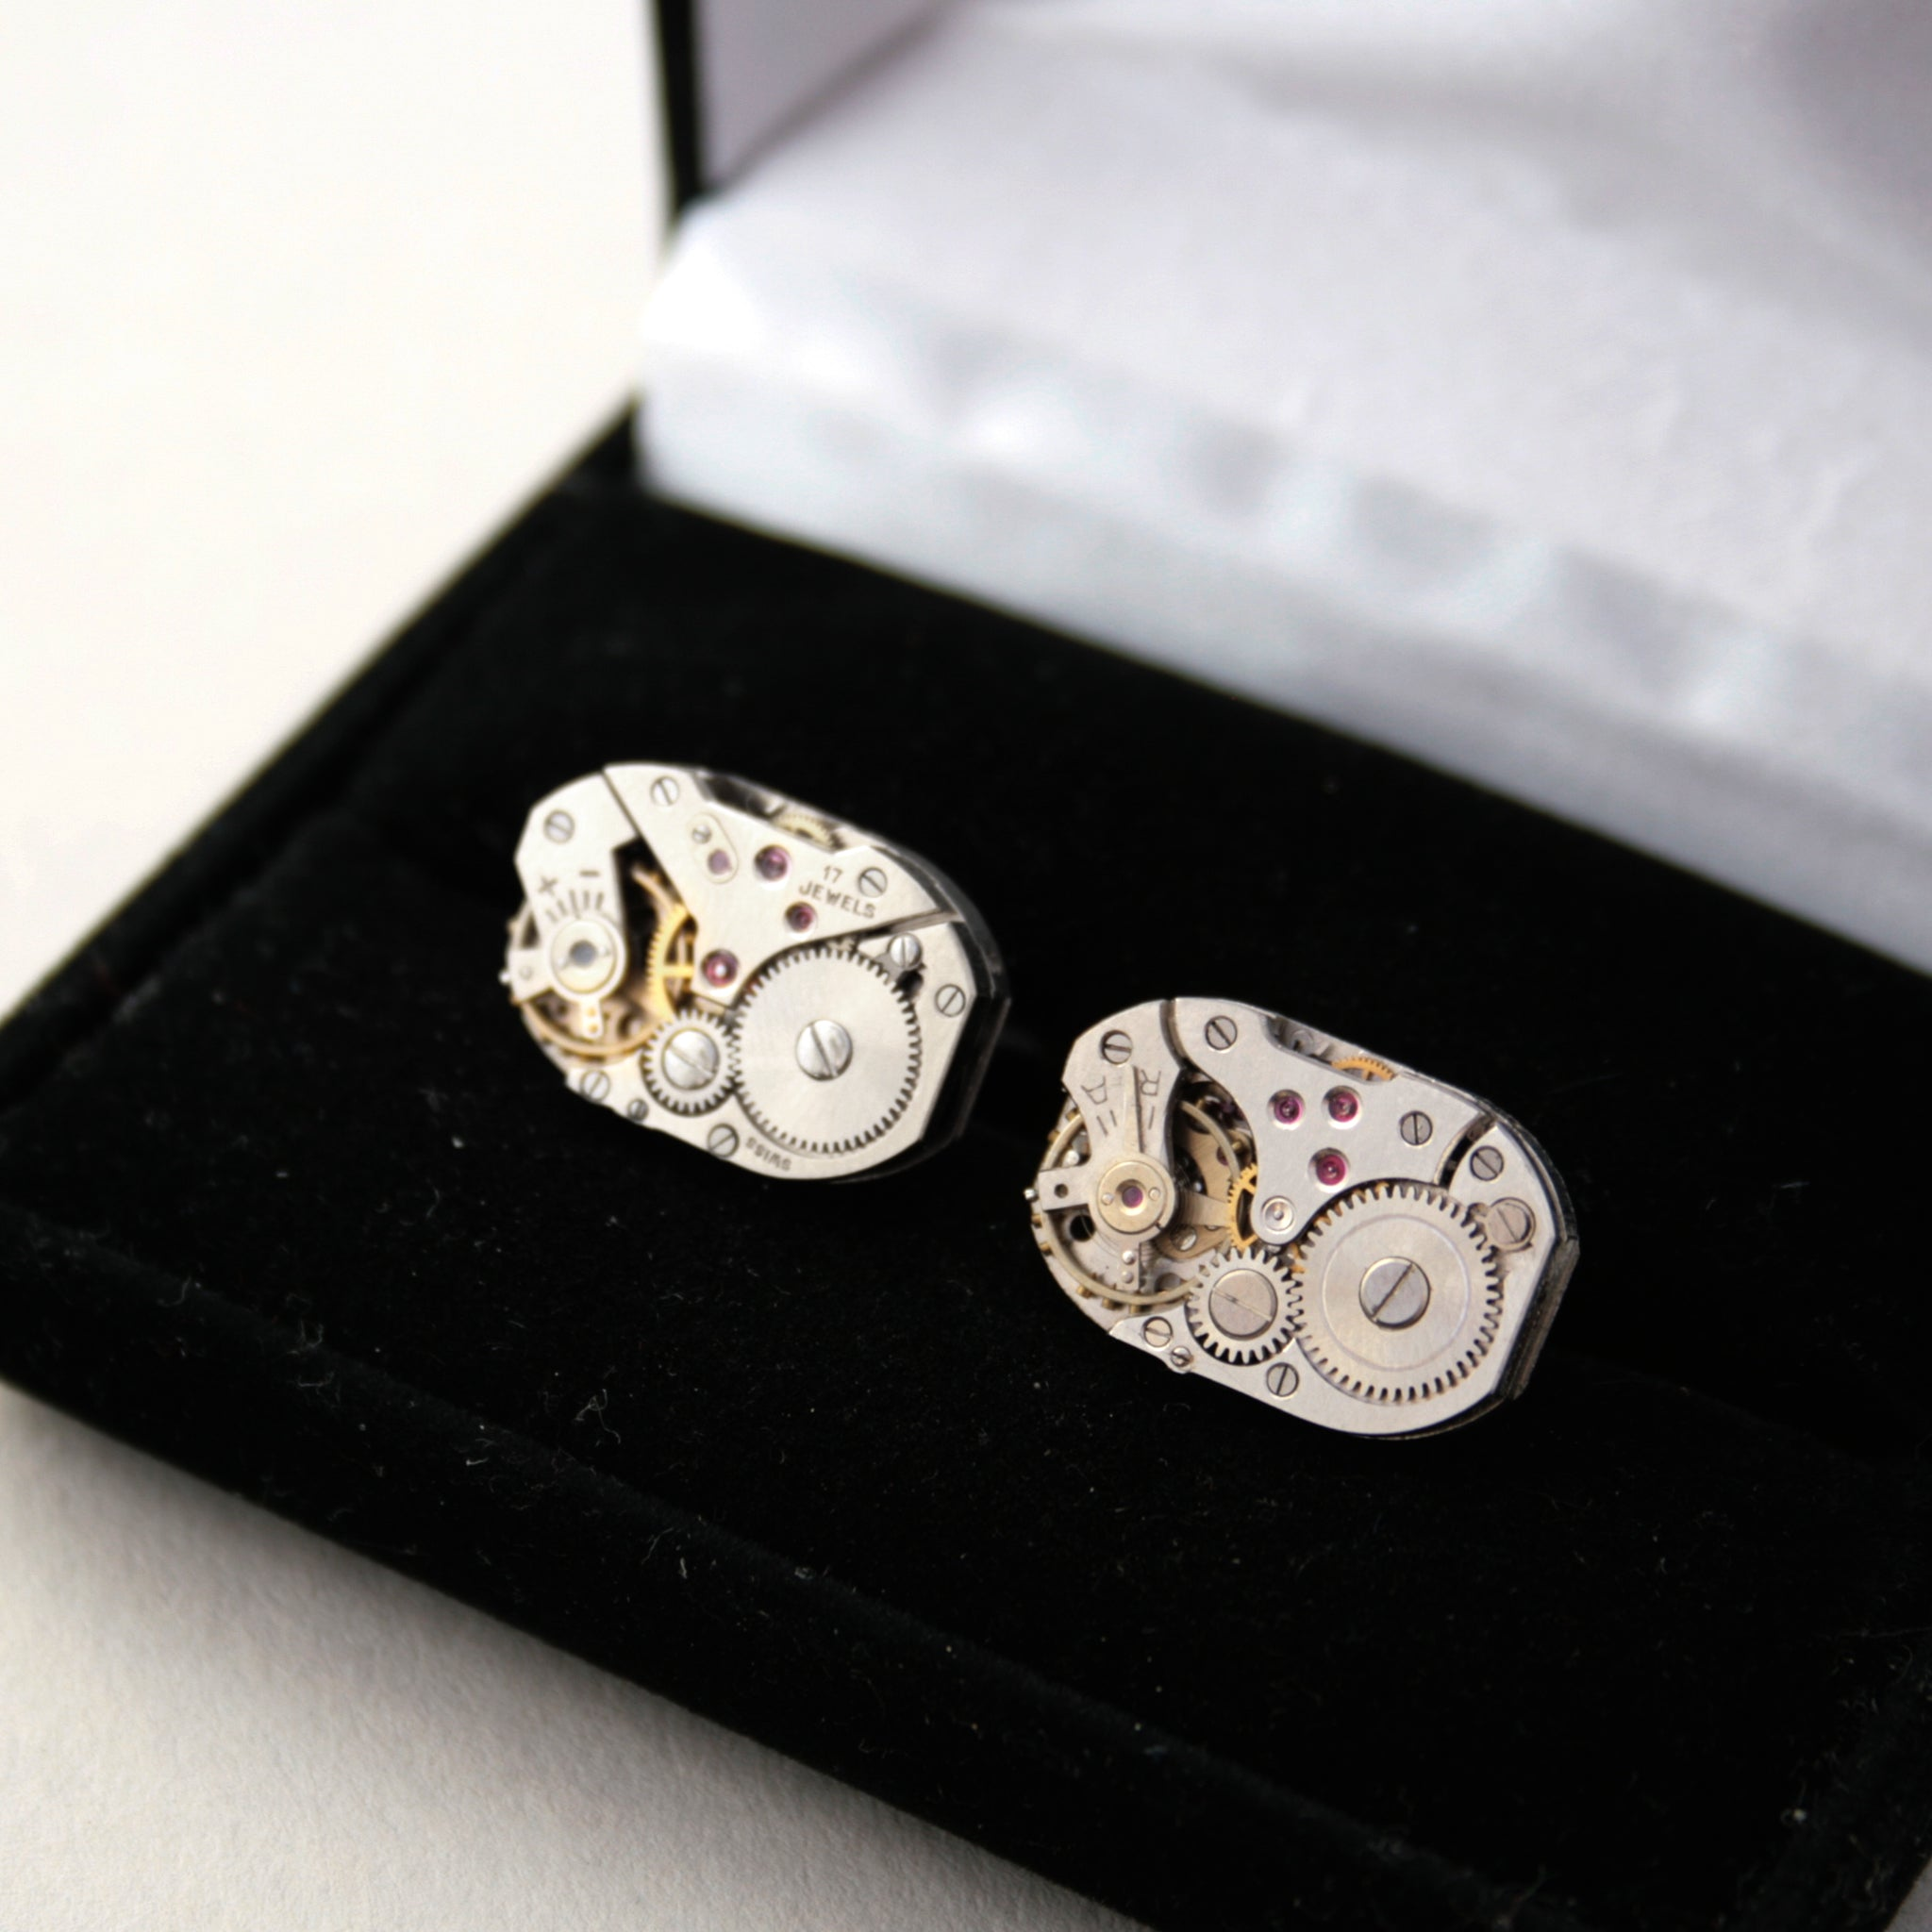 Clockwork Cufflinks in a box